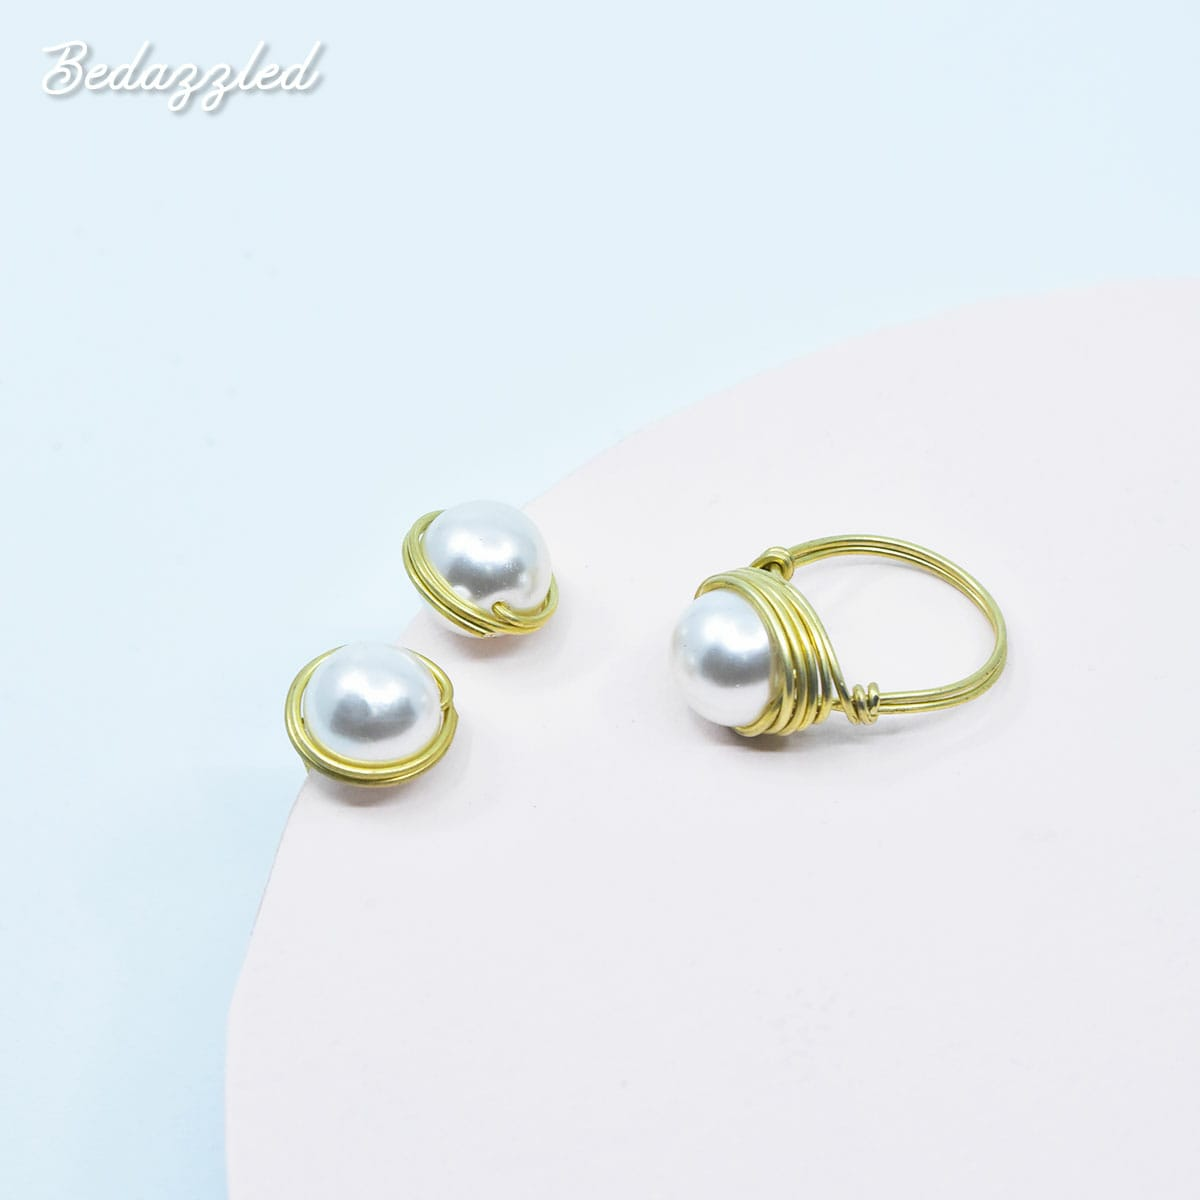 Bedazzling Pearl - Set of 2